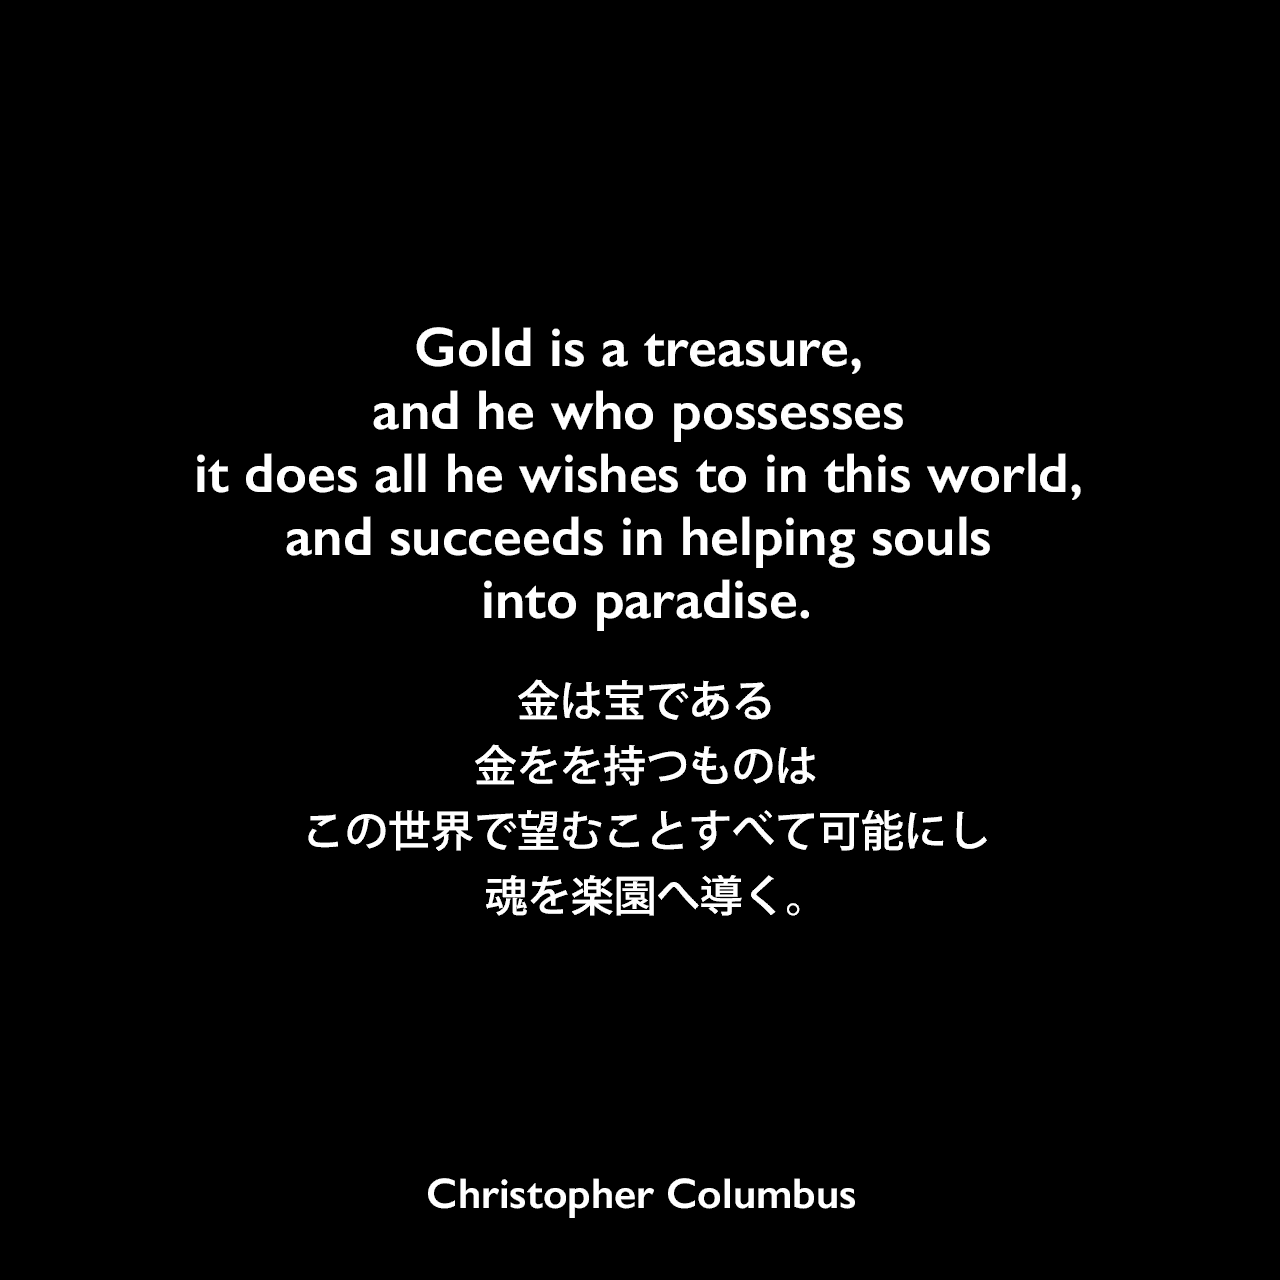 Gold is a treasure, and he who possesses it does all he wishes to in this world, and succeeds in helping souls into paradise.金は宝である、金をを持つものはこの世界で望むことすべて可能にし、魂を楽園へ導く。Christopher Columbus